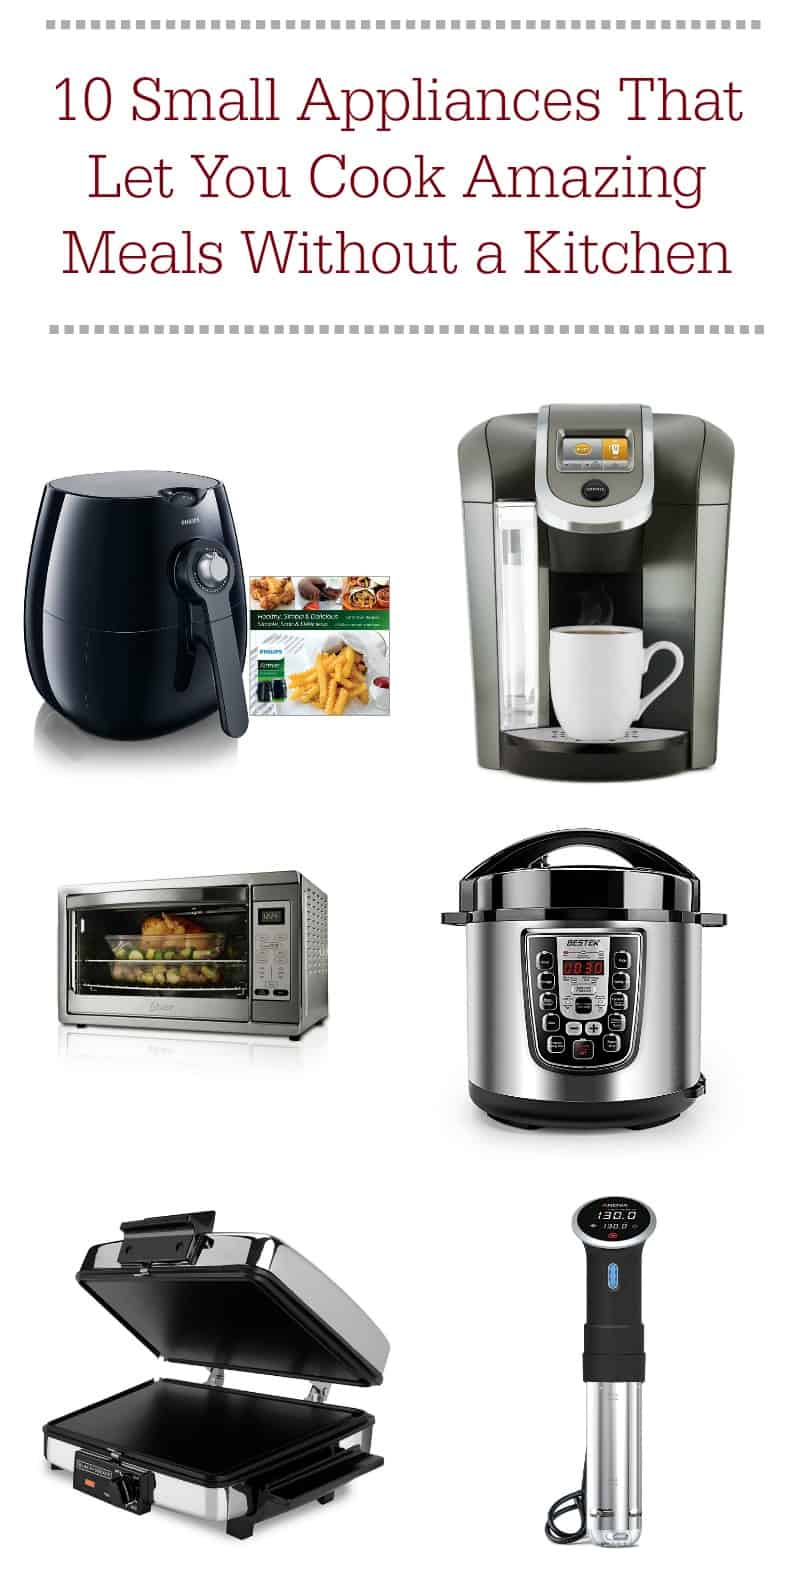 Think you need a kitchen to cook healthy meals? Think again! These 10 spectacular small appliances let you cook incredible meals without ever turning on an oven or a stove! Whip up delicious drinks, cook 3-course meals, and even bake cakes, all without ever stepping foot into an actual kitchen!